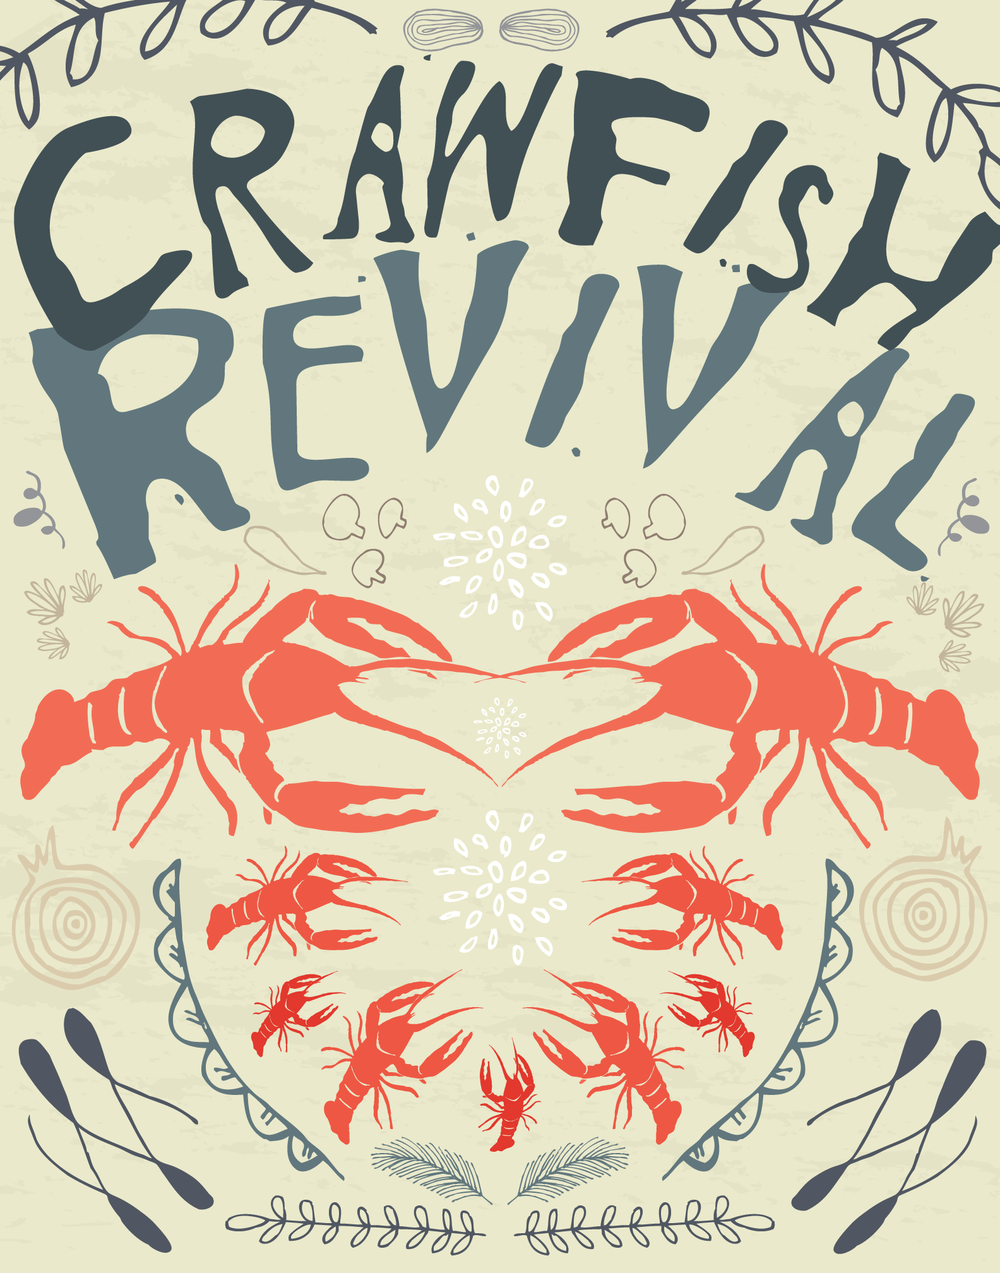 12TBMS004_Crawfish_Poster_22x28_R3.png